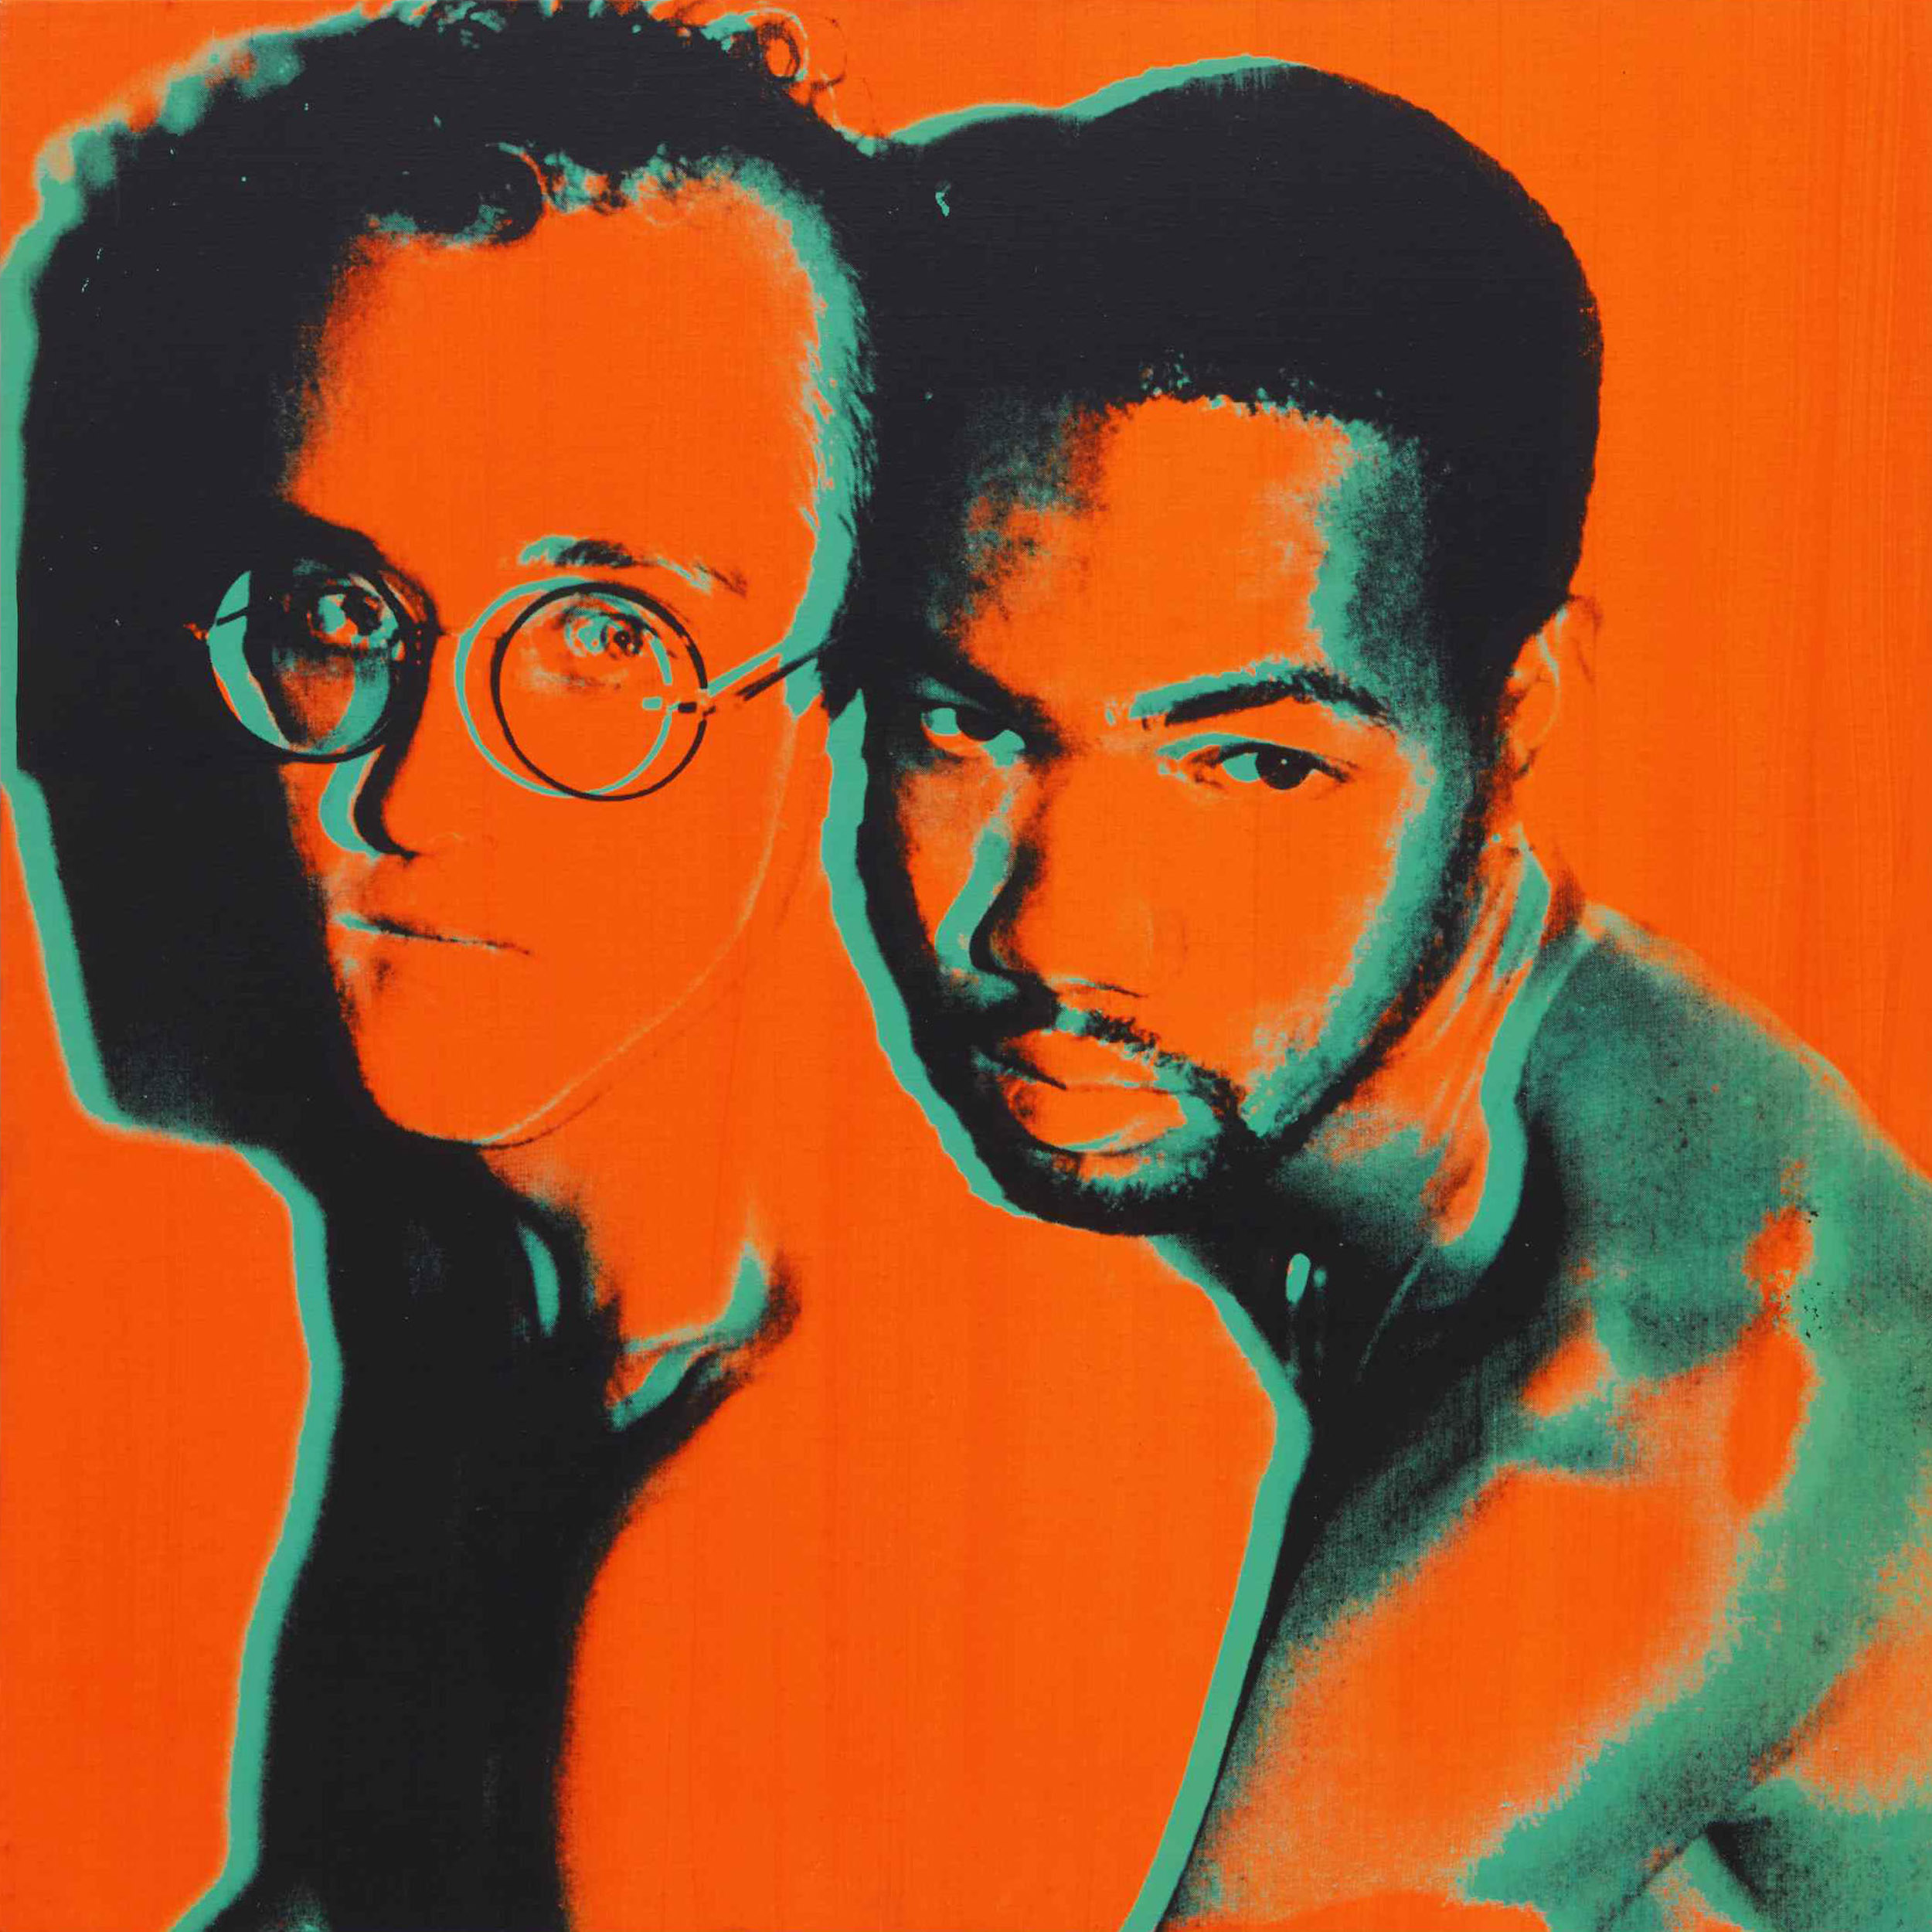 Andy Warhol, Portrait of Keith Haring and Juan DuBose